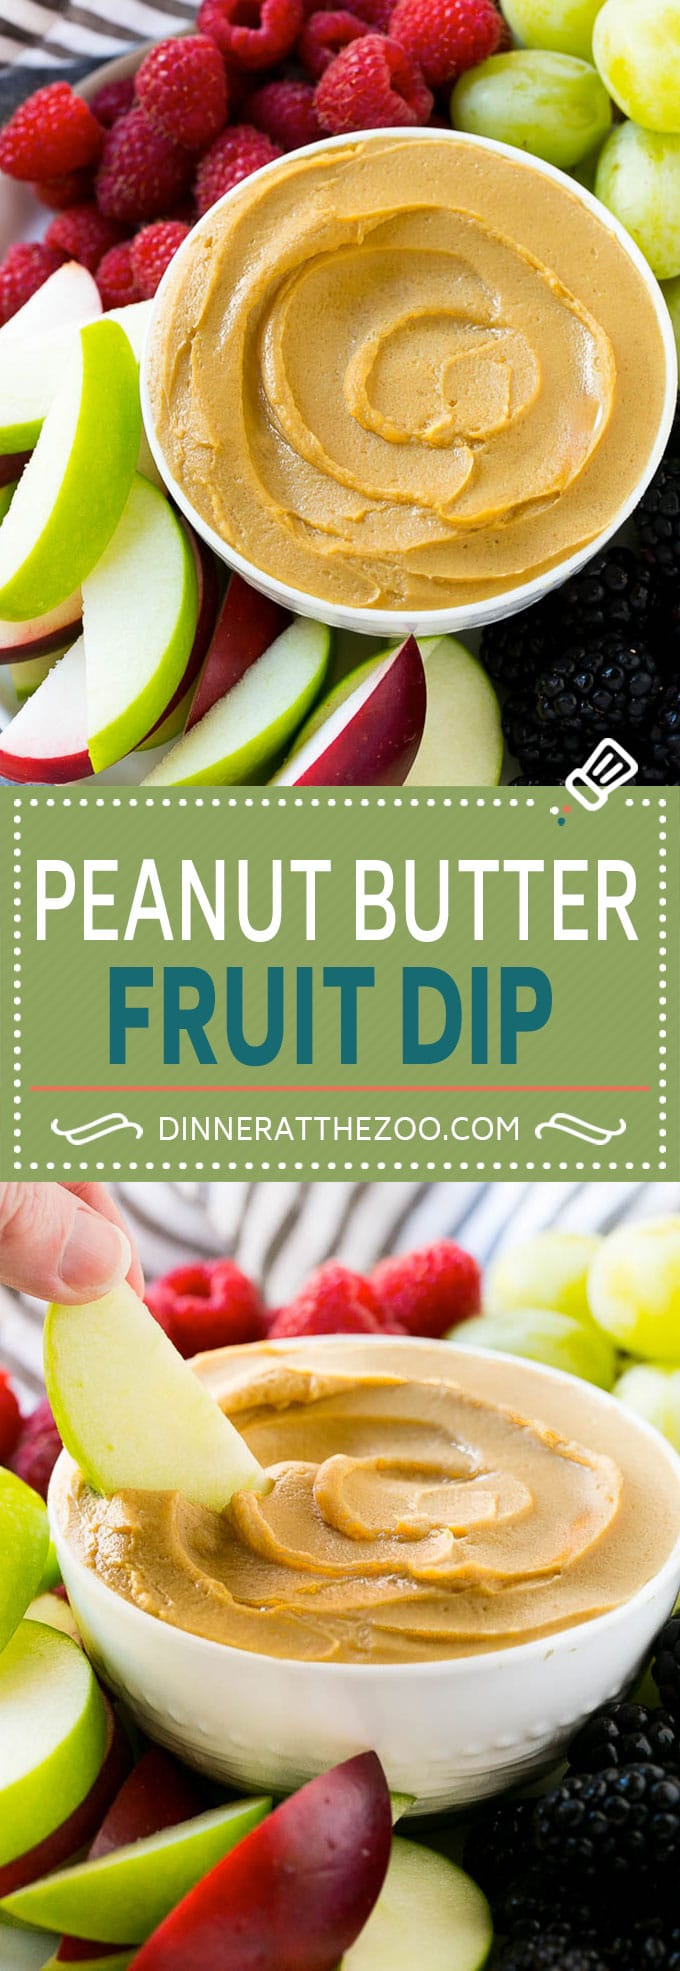 This peanut butter fruit dip is an easy and healthy snack!